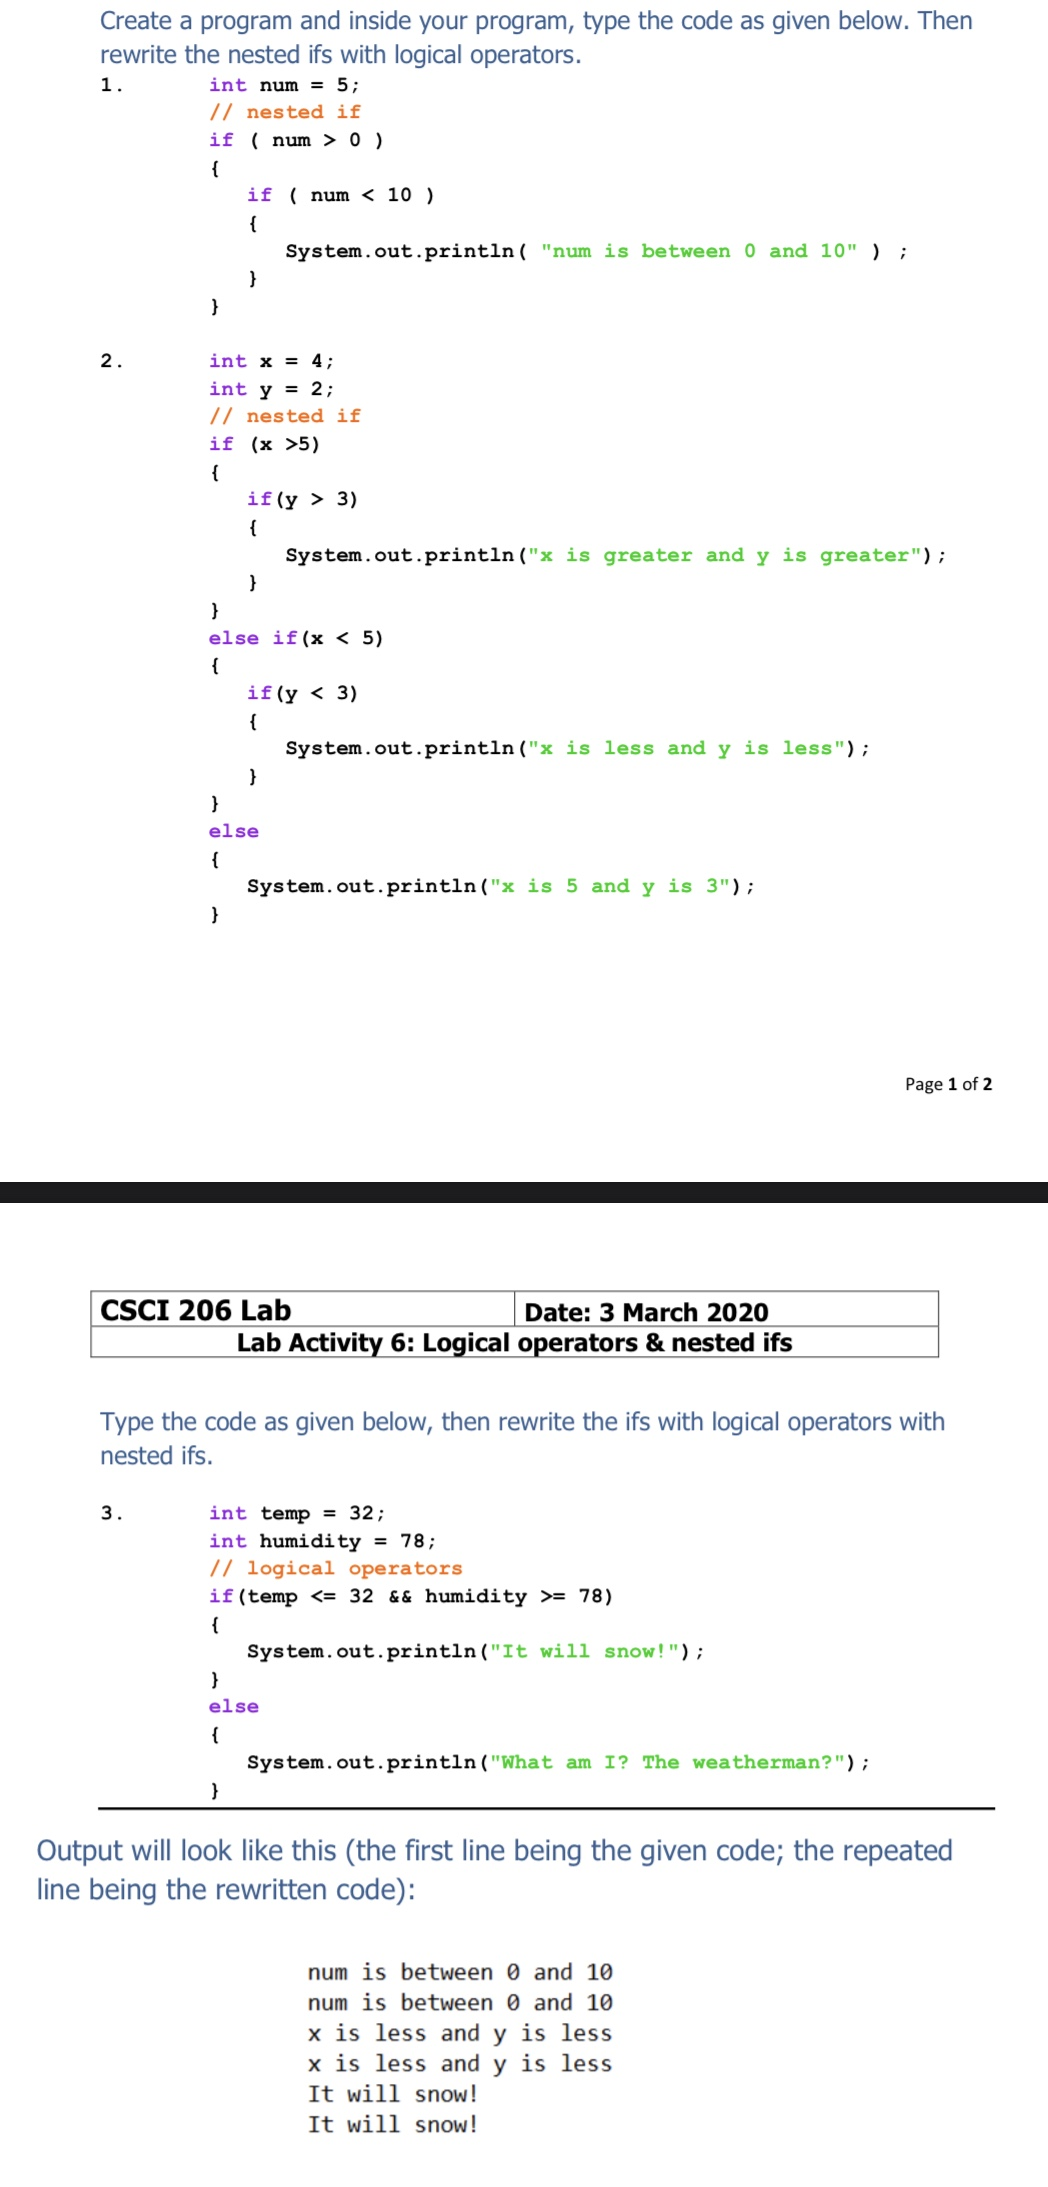 """Create a program and inside your program, type the code as given below. Then rewrite the nested ifs with logical operators. 1. int num = 5; // nested if if ( num > 0 ) { if ( num < 10 ) { System.out.println( """"num is between 0 and 10"""" ) ; } 2. int x = 4; int y = 2; // nested if if (x >5) { if (y > 3) { System.out.println (""""x is greater and y is greater""""); else if(x < 5) { if (y < 3) { System.out.println (""""x is less and y is less""""); else System.out.println (""""x is 5 and y is 3""""); Page 1 of 2 CSCI 206 Lab Date: 3 March 2020 Lab Activity 6: Logical operators & nested ifs Type the code as given below, then rewrite the ifs with logical operators with nested ifs. 3. int temp = 32; int humidity = 78; // logical operators if(temp <= 32 && humidity >= 78) { System.out.println(""""It will snow!""""); else { System.out.println (""""What am I? The weatherman?""""); Output will look like this (the first line being the given code; the repeated line being the rewritten code): num is between 0 and 10 num is between 0 and 10 x is less and y is less x is less and y is less It will snow! It will snow!"""